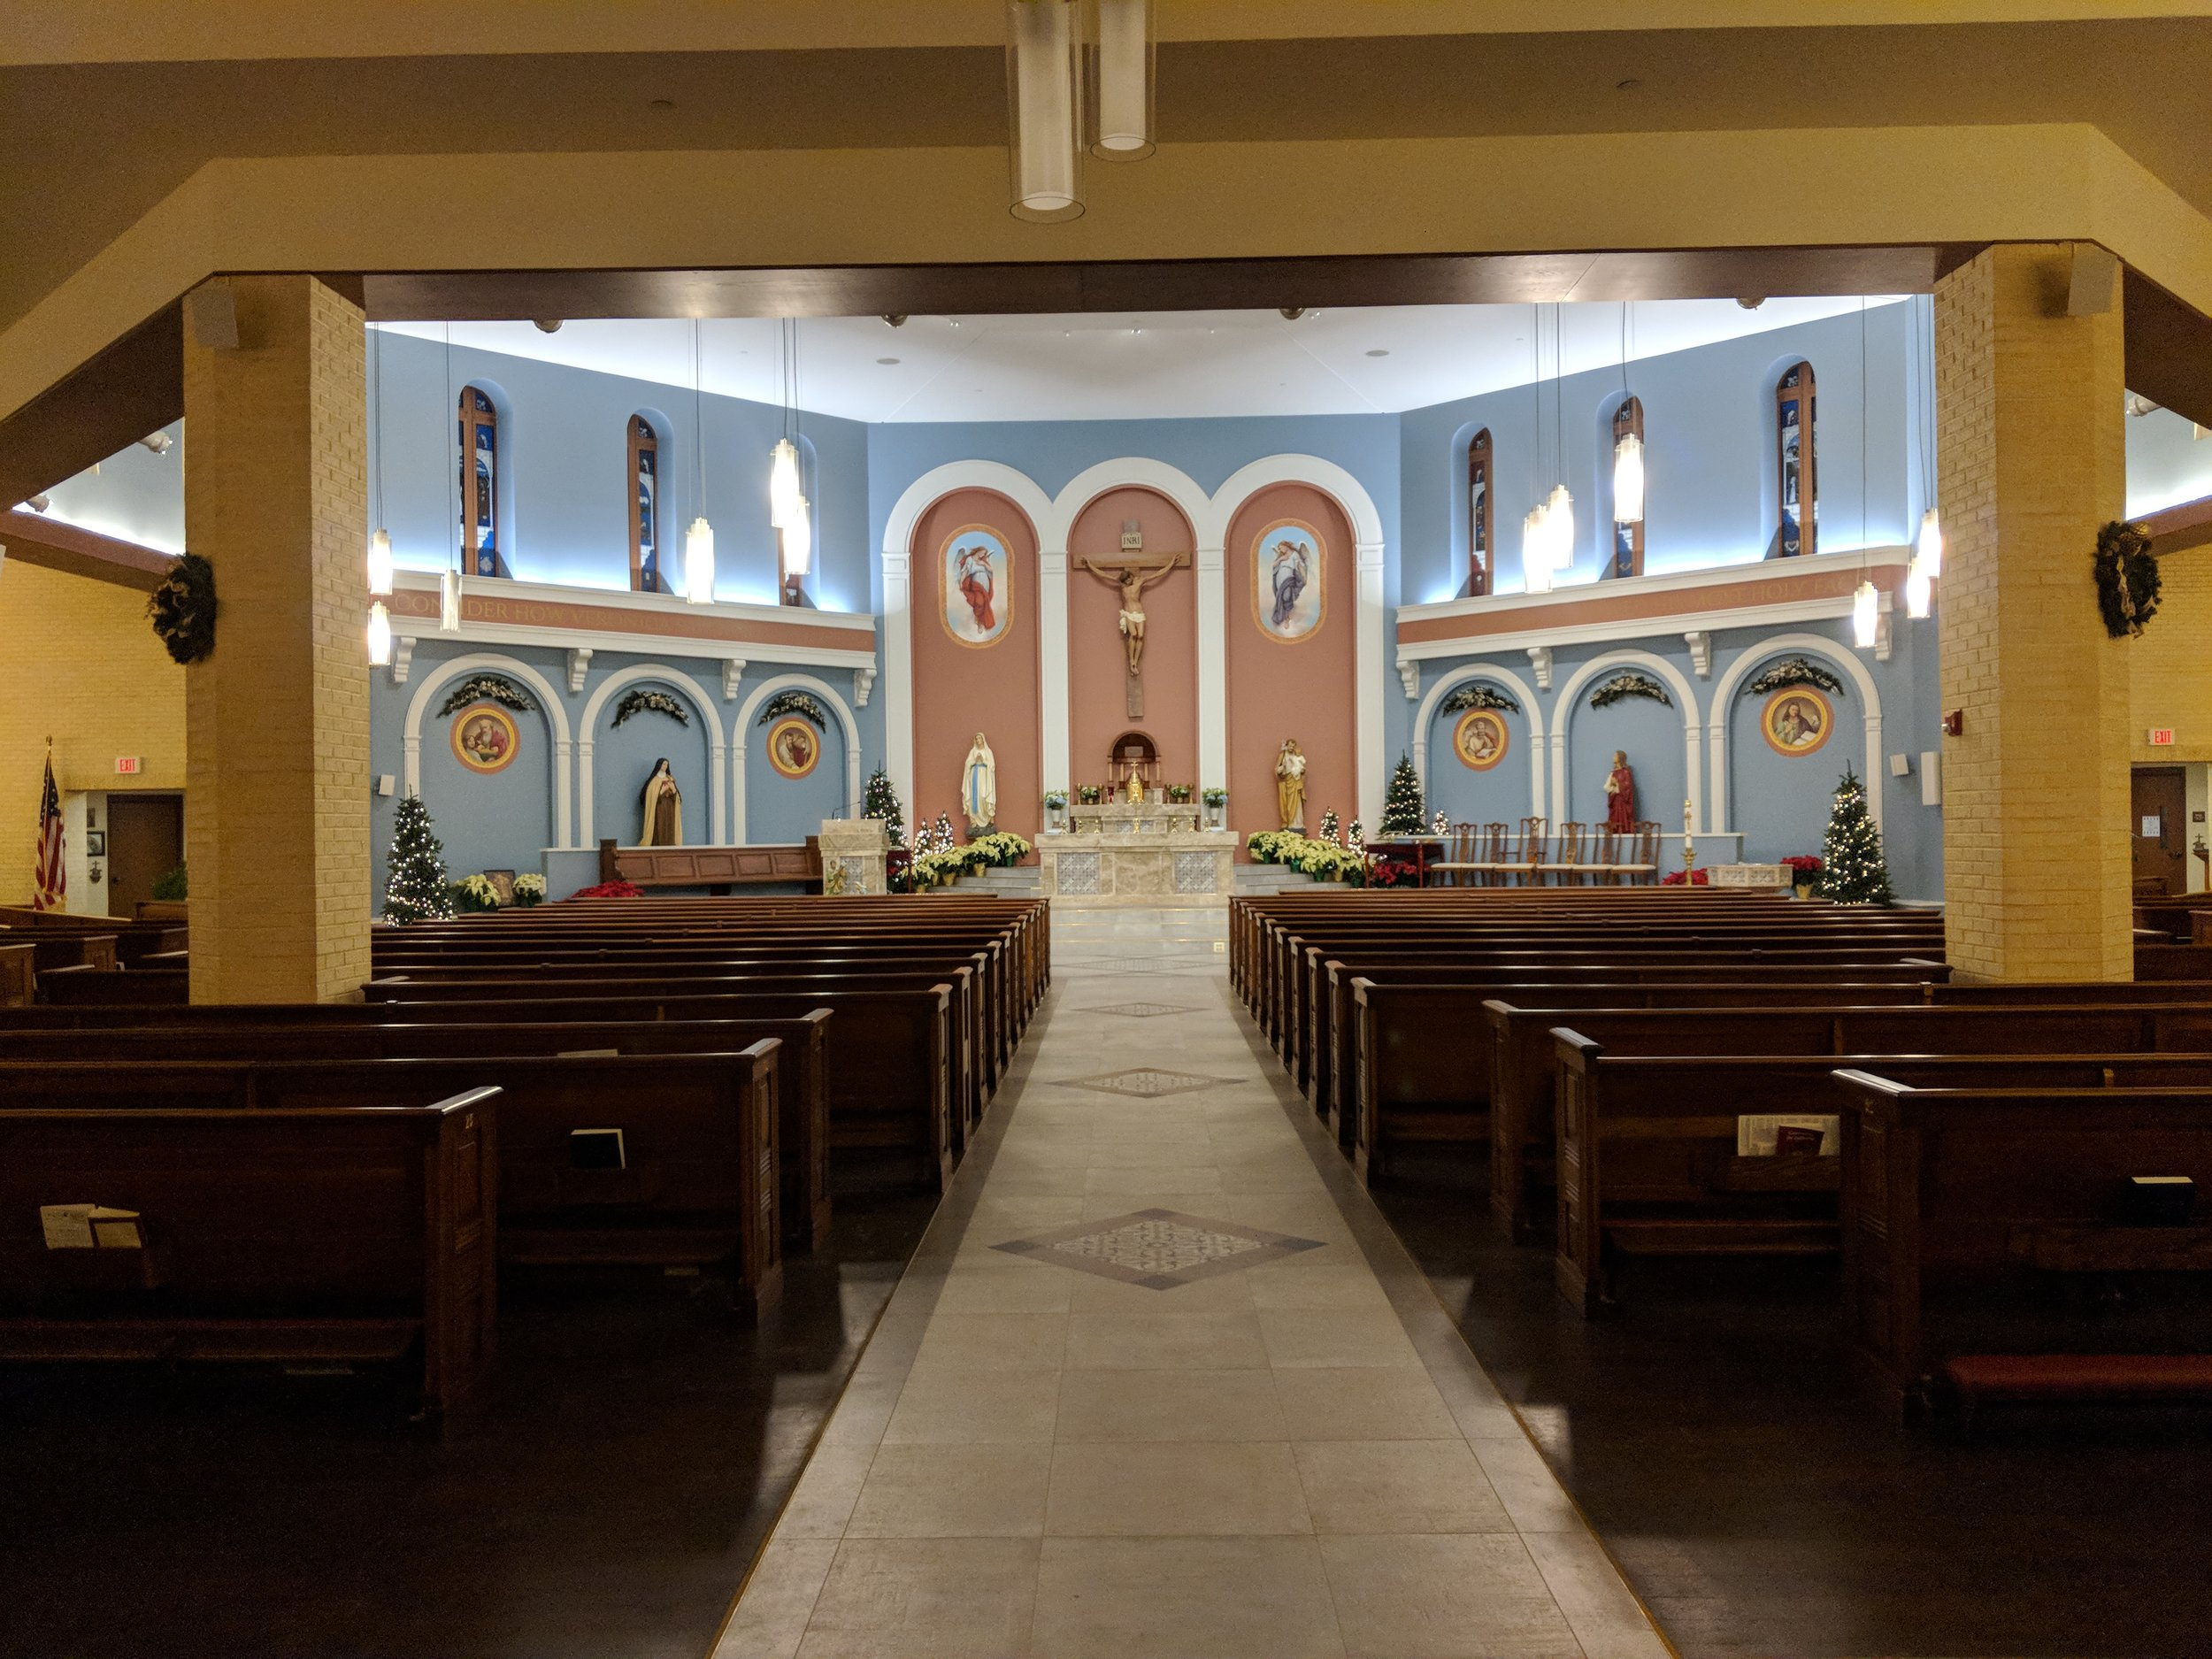 CAMM DT-200 speakers provide audio coverage in the rear of the church. Line array speakers provide coverage in the front pews and DT-1 monitor speakers provide coverage in the sanctuary.